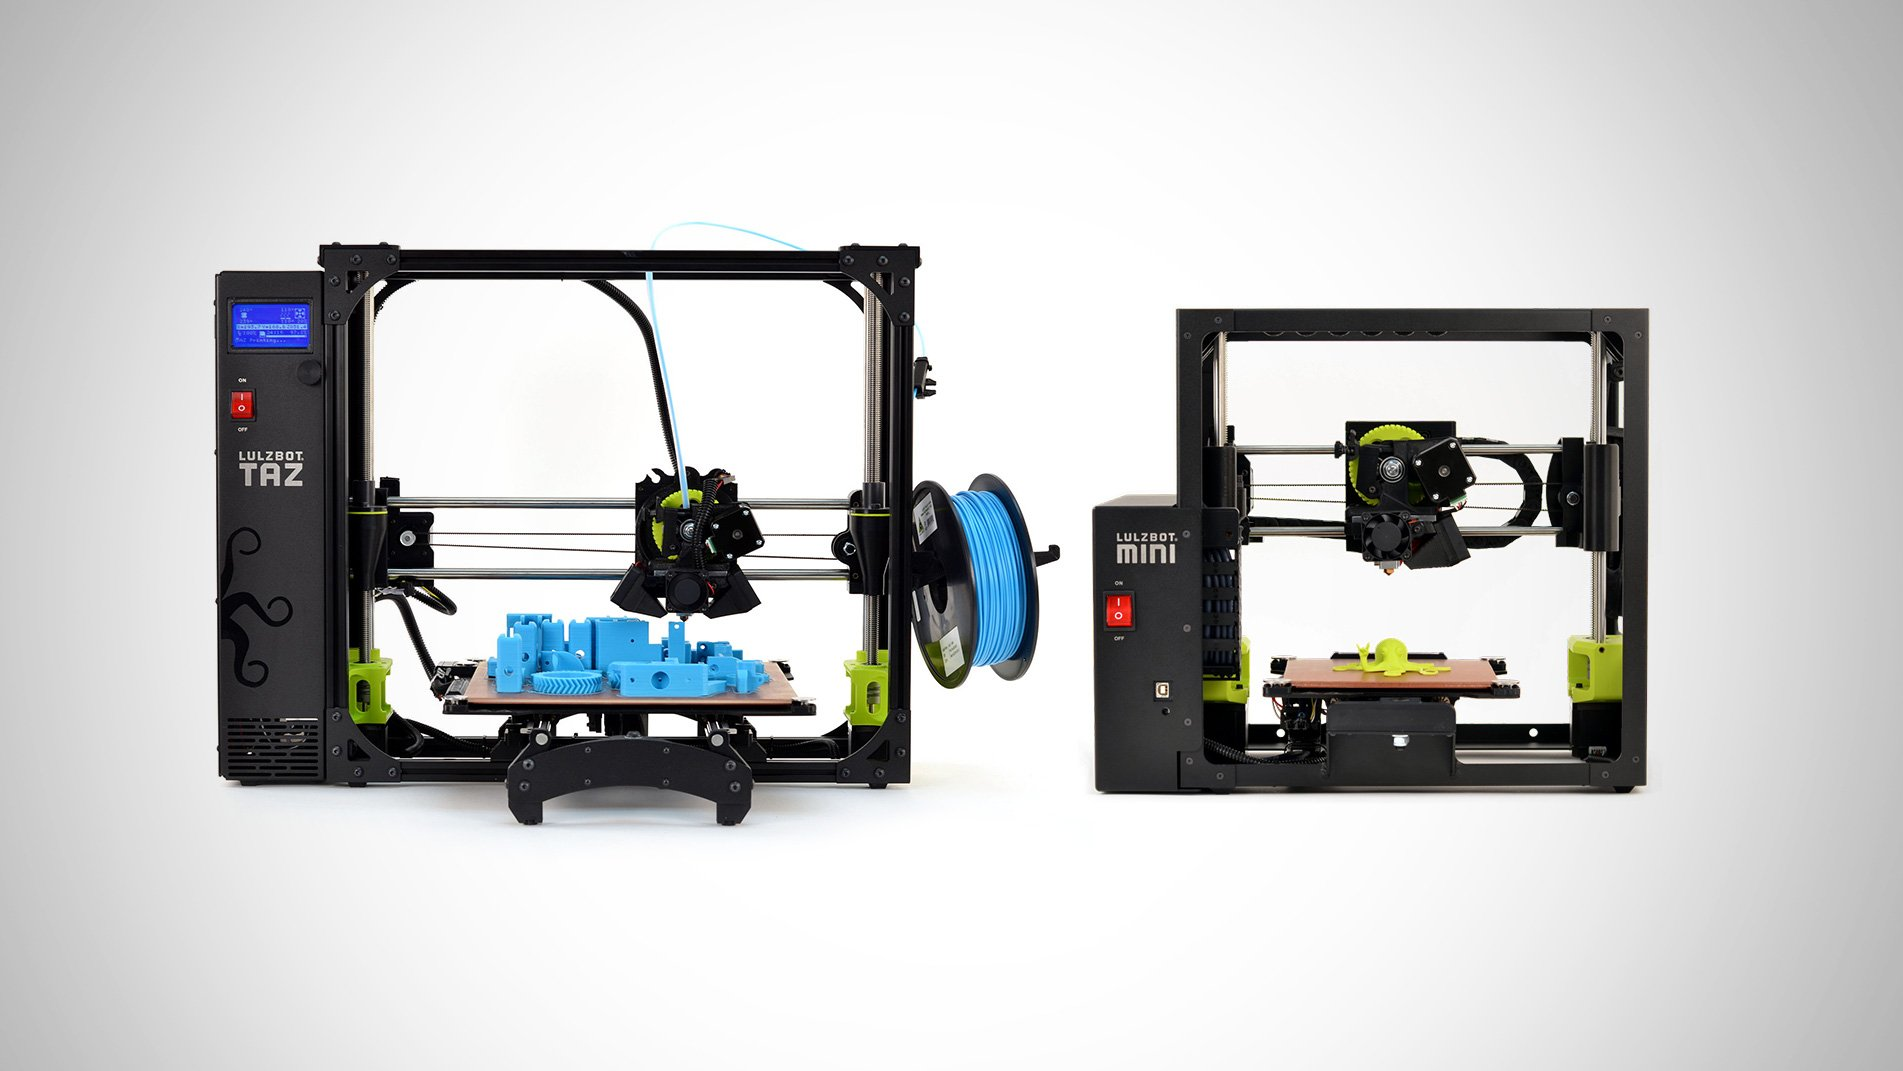 [DEAL] Pick Up a Lulzbot at 32% Off & Benefit the Free Software Foundation Doing it | All3DP